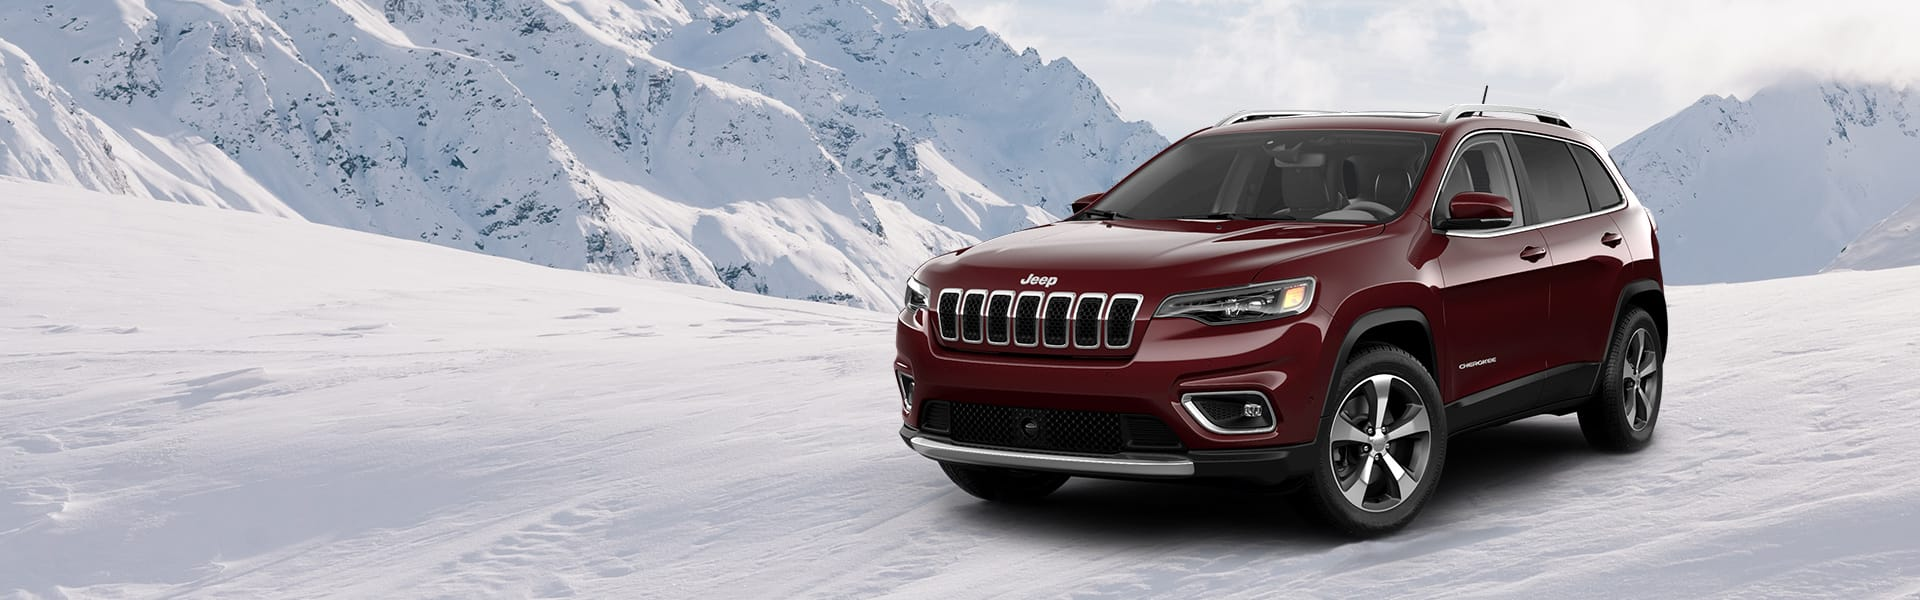 A 2021 Cherokee Limited 4x4 on a snow-covered trail in the mountains.